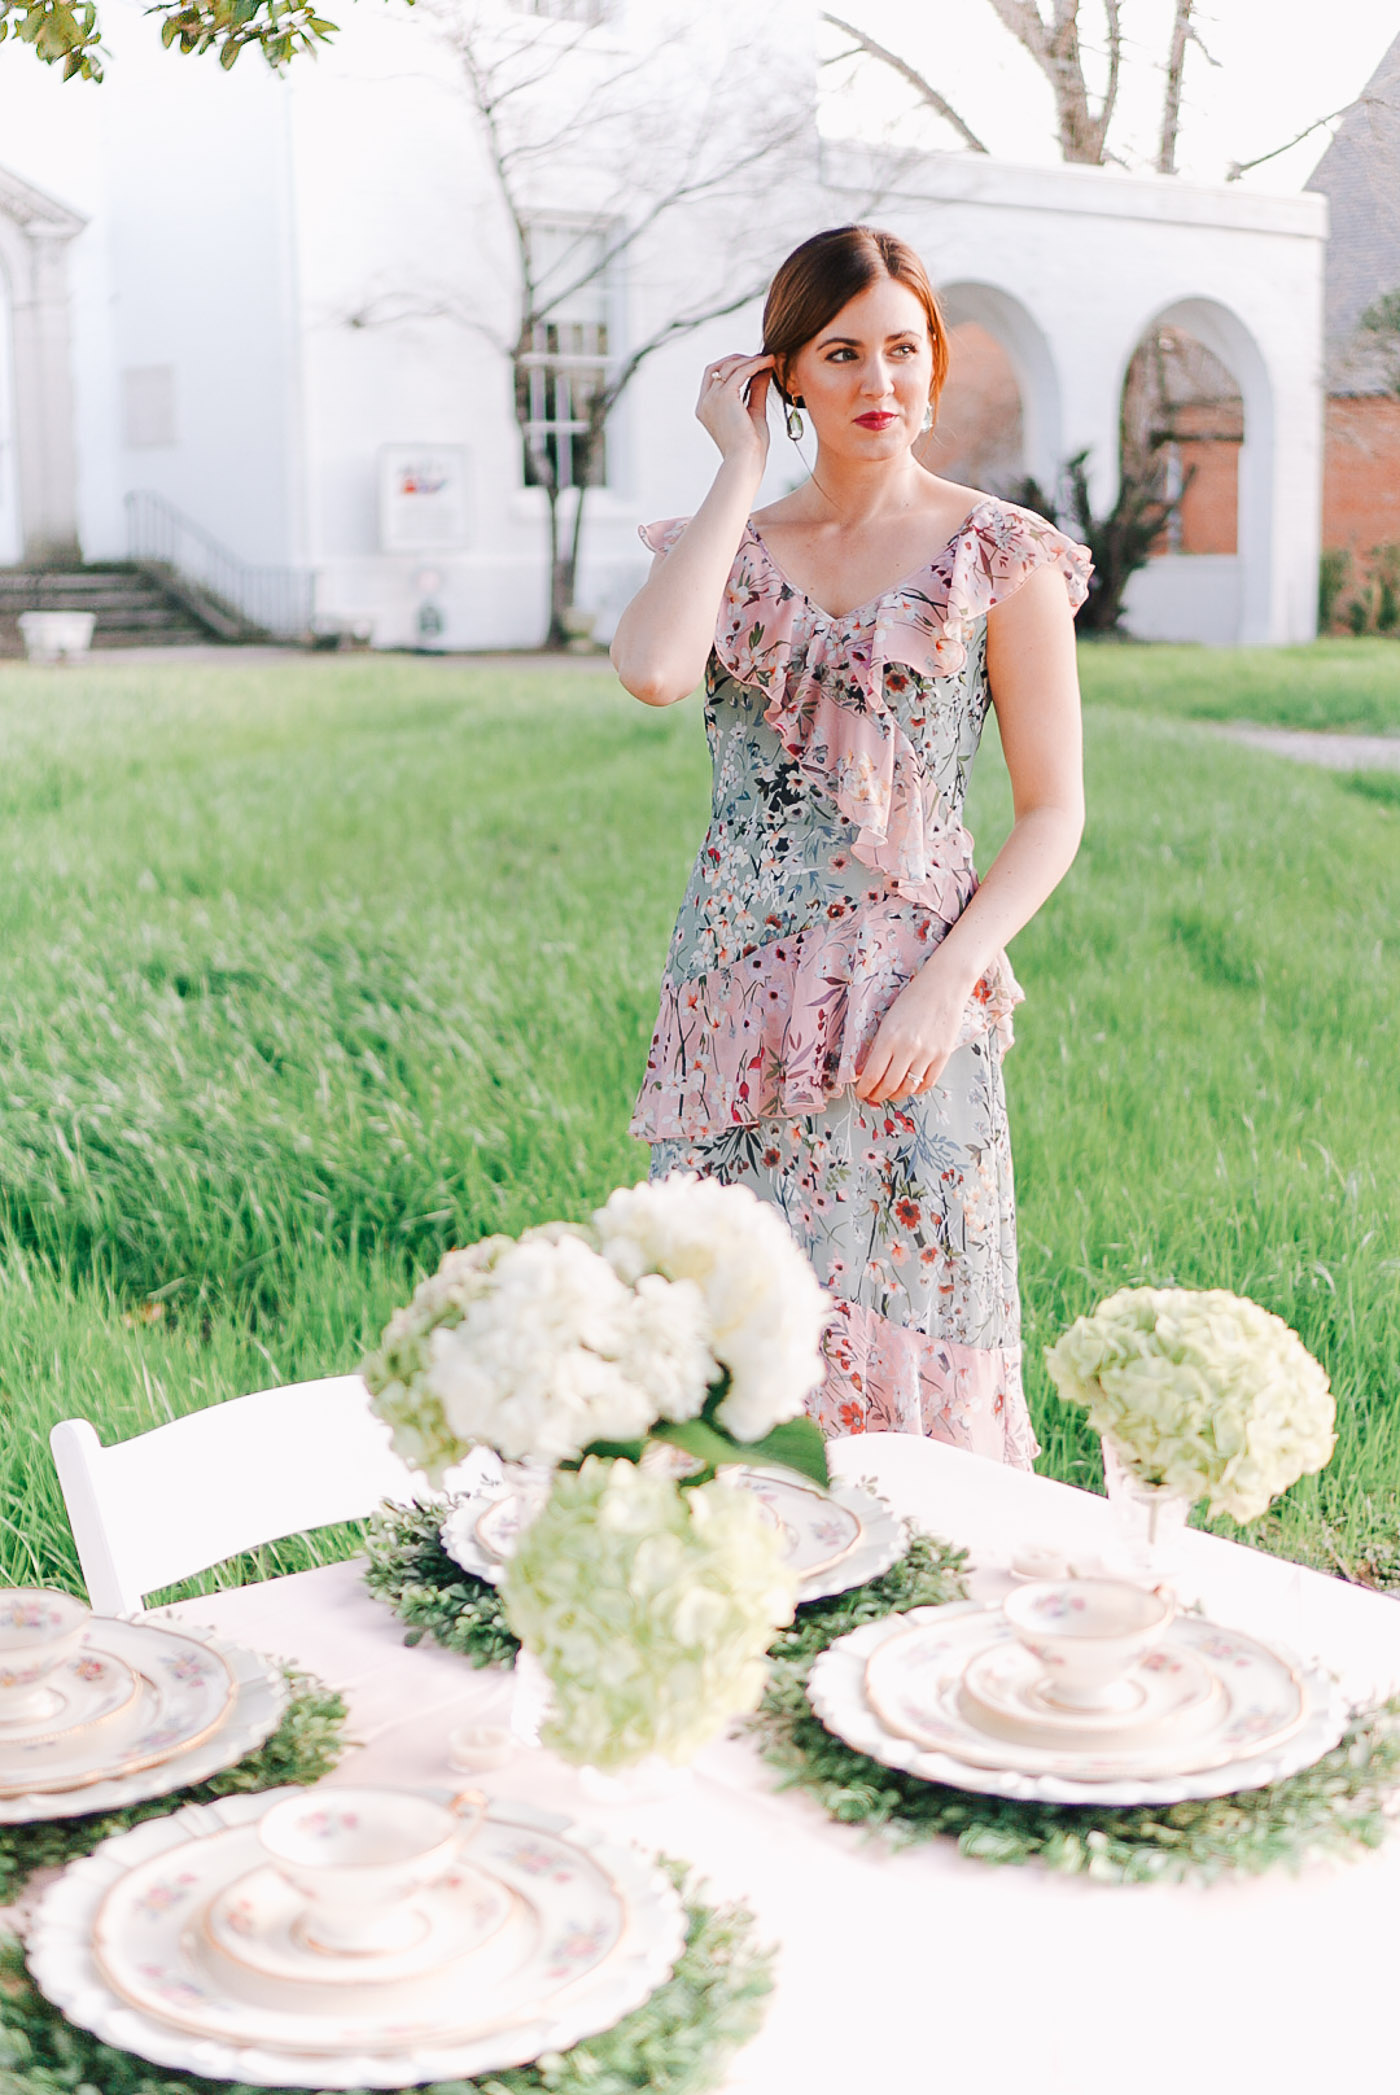 A floral bridal tea table setting by lauren cermak of the southern lifestyle blog Going For Grace.